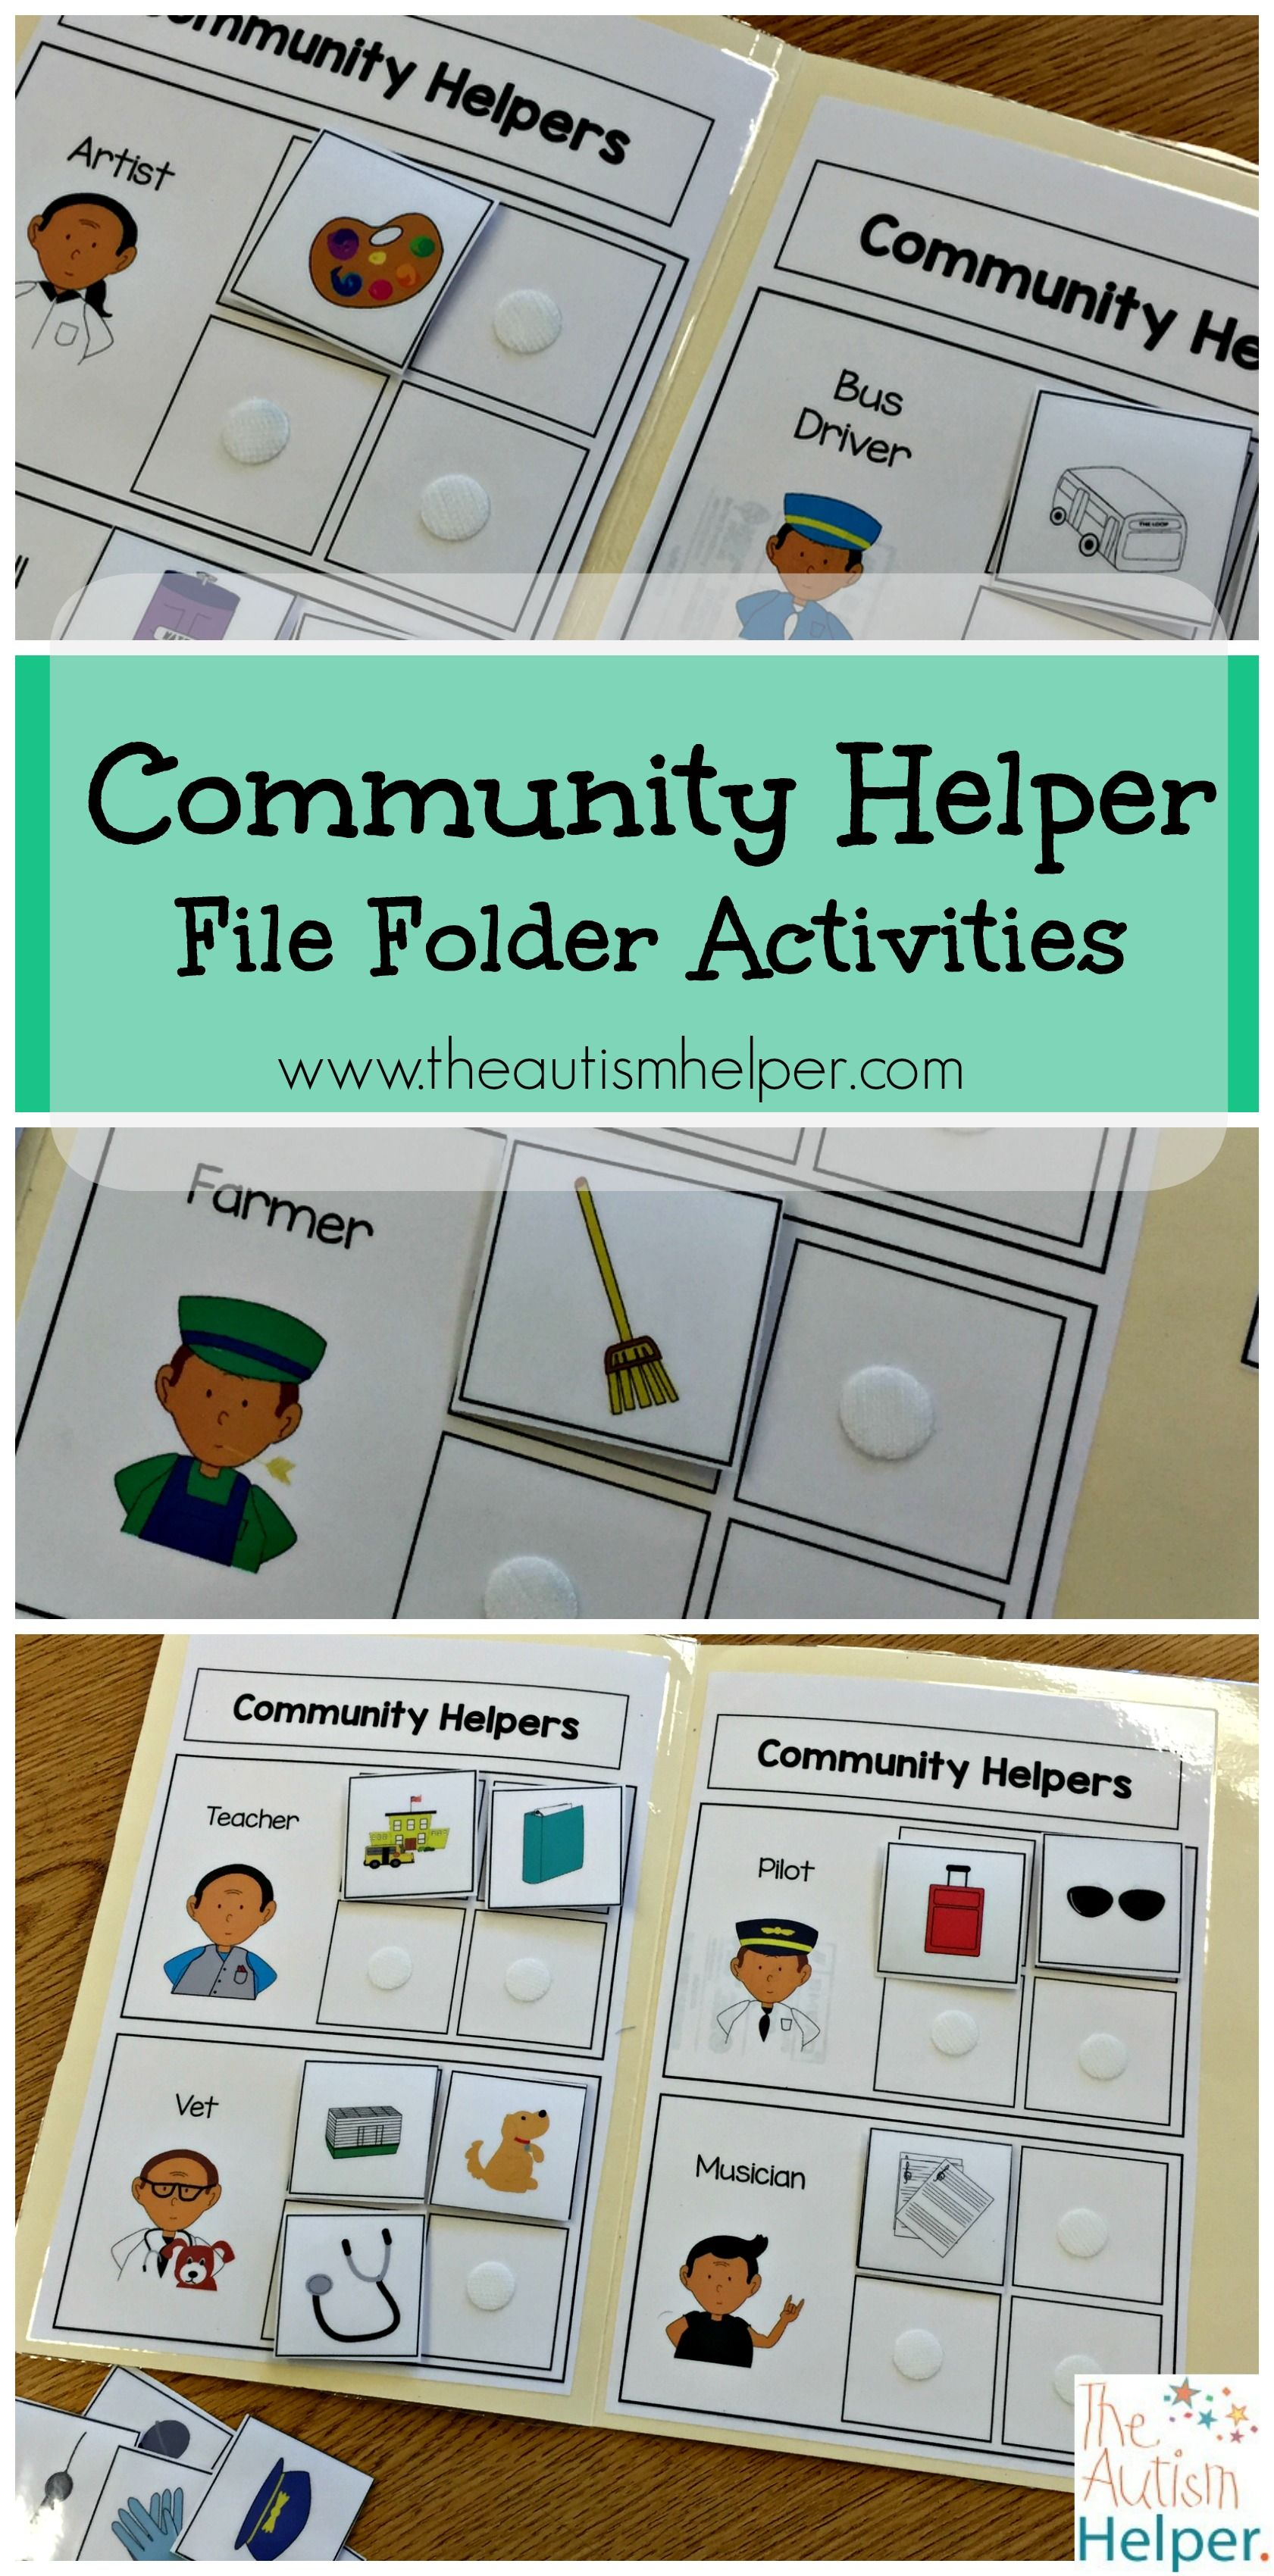 Community Helper File Folder Activities